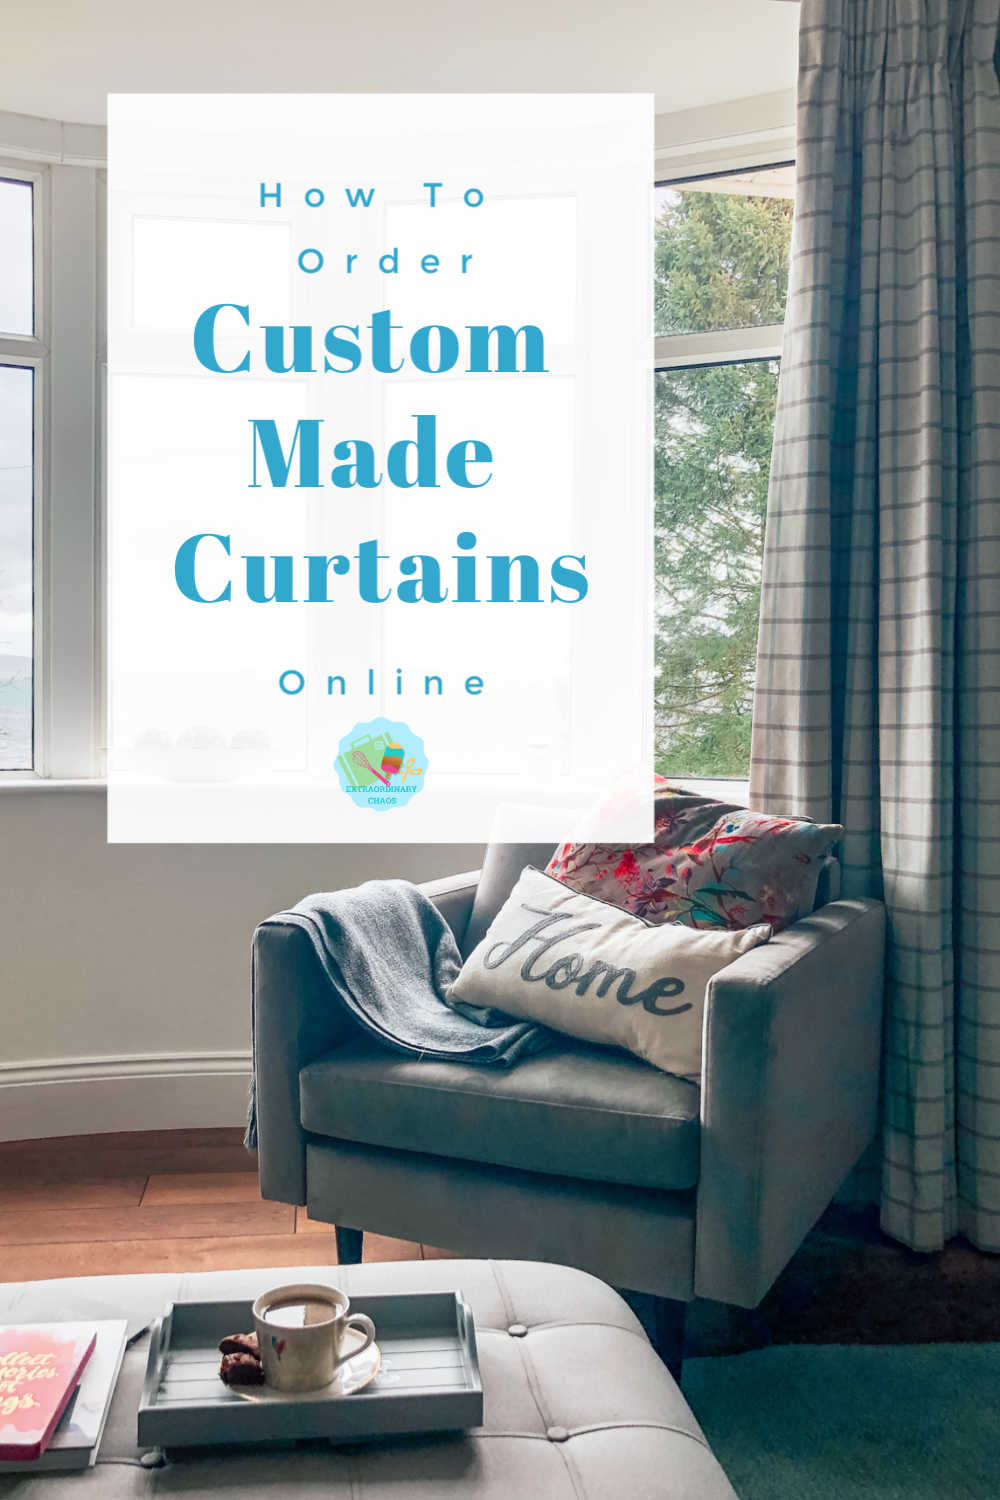 How to order custom made curtains online, including choosing samples, measuring and ordering guide